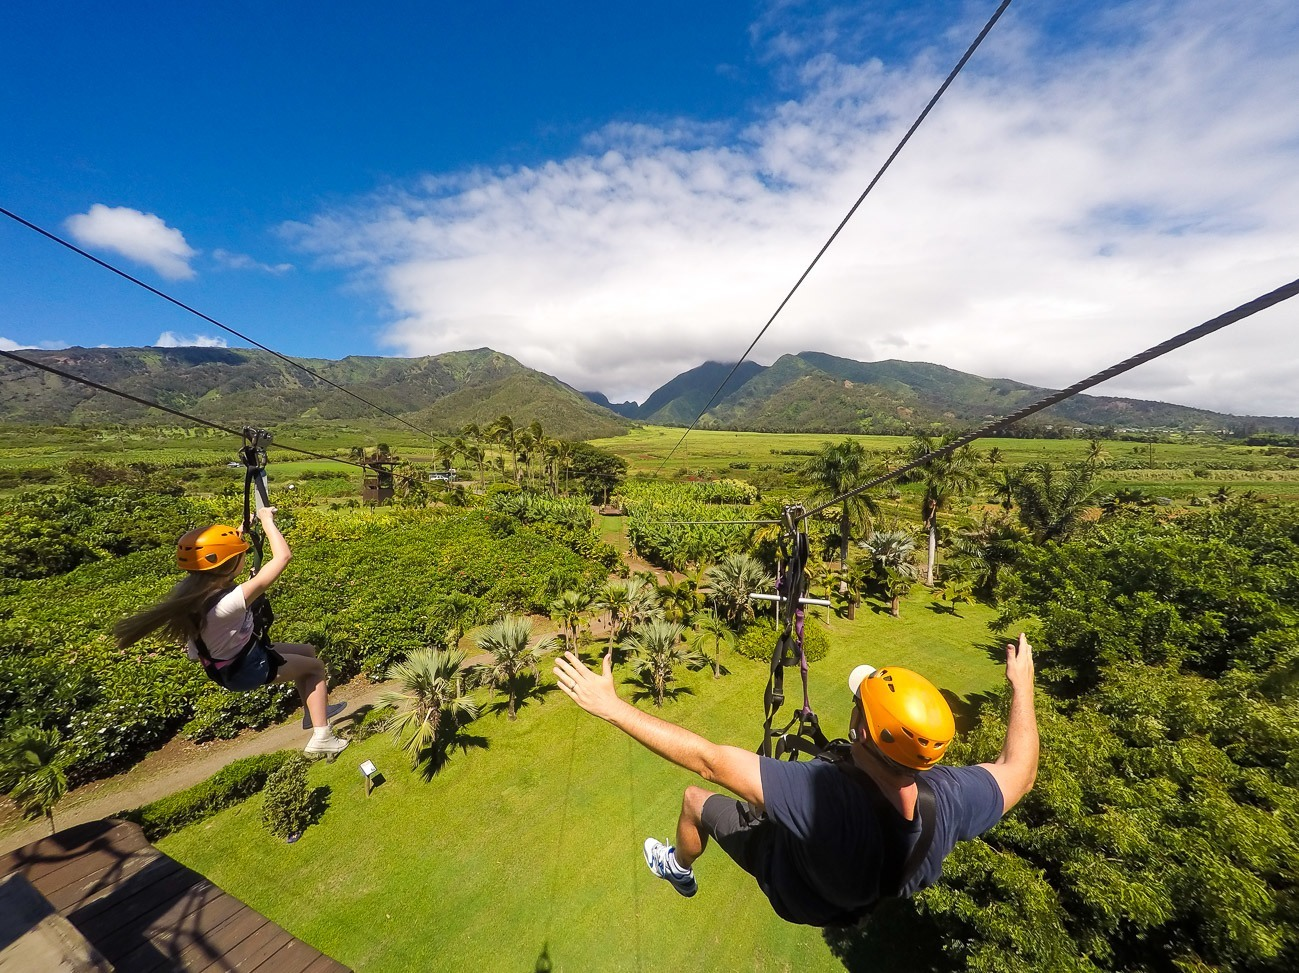 My daughter and husband zip line over a lush plantation with panoramic views at Maui Zipline.